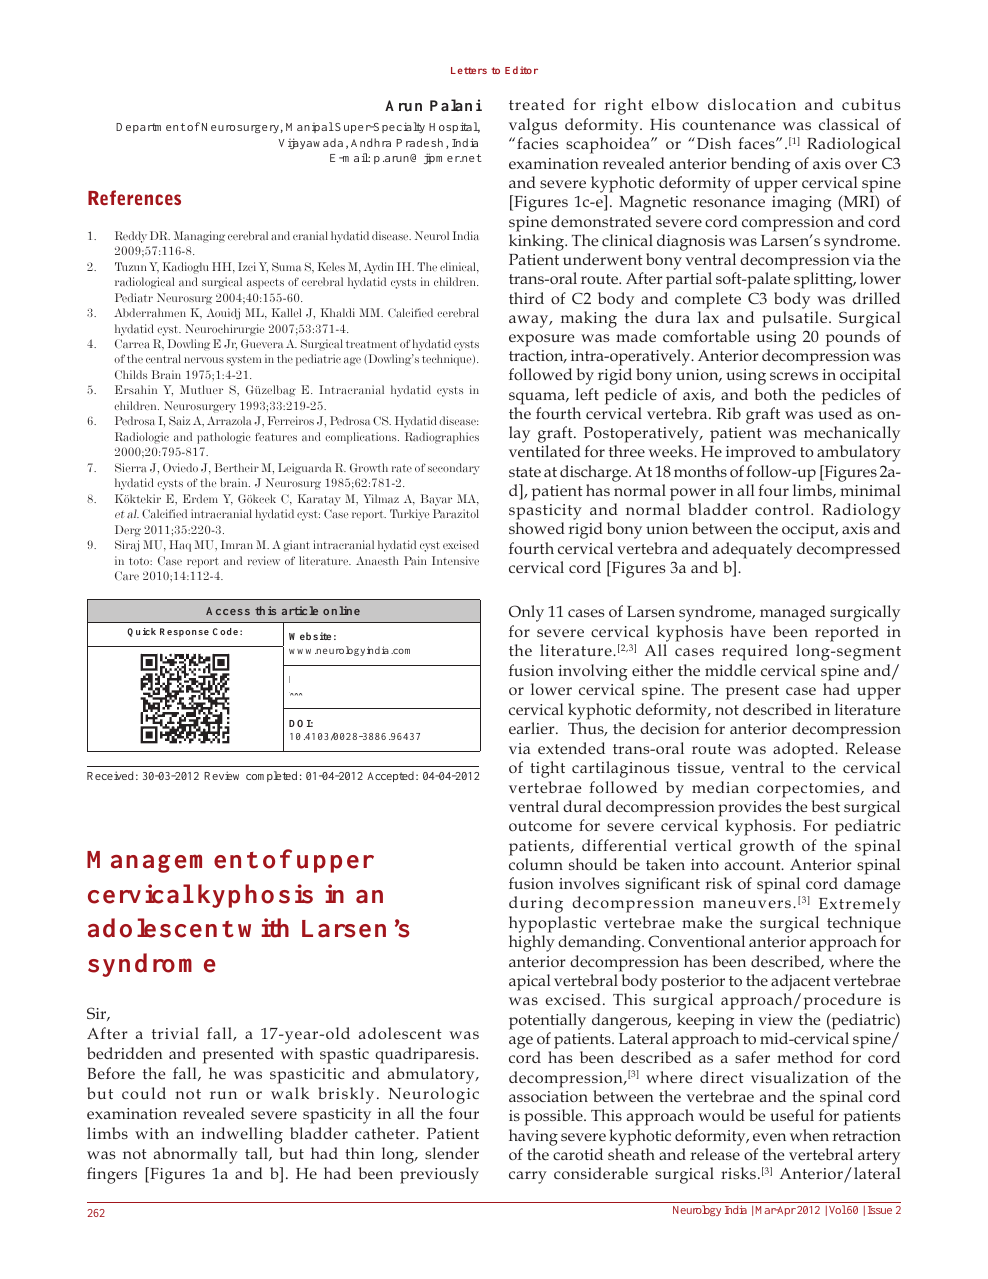 Management of upper cervical kyphosis in an adolescent with